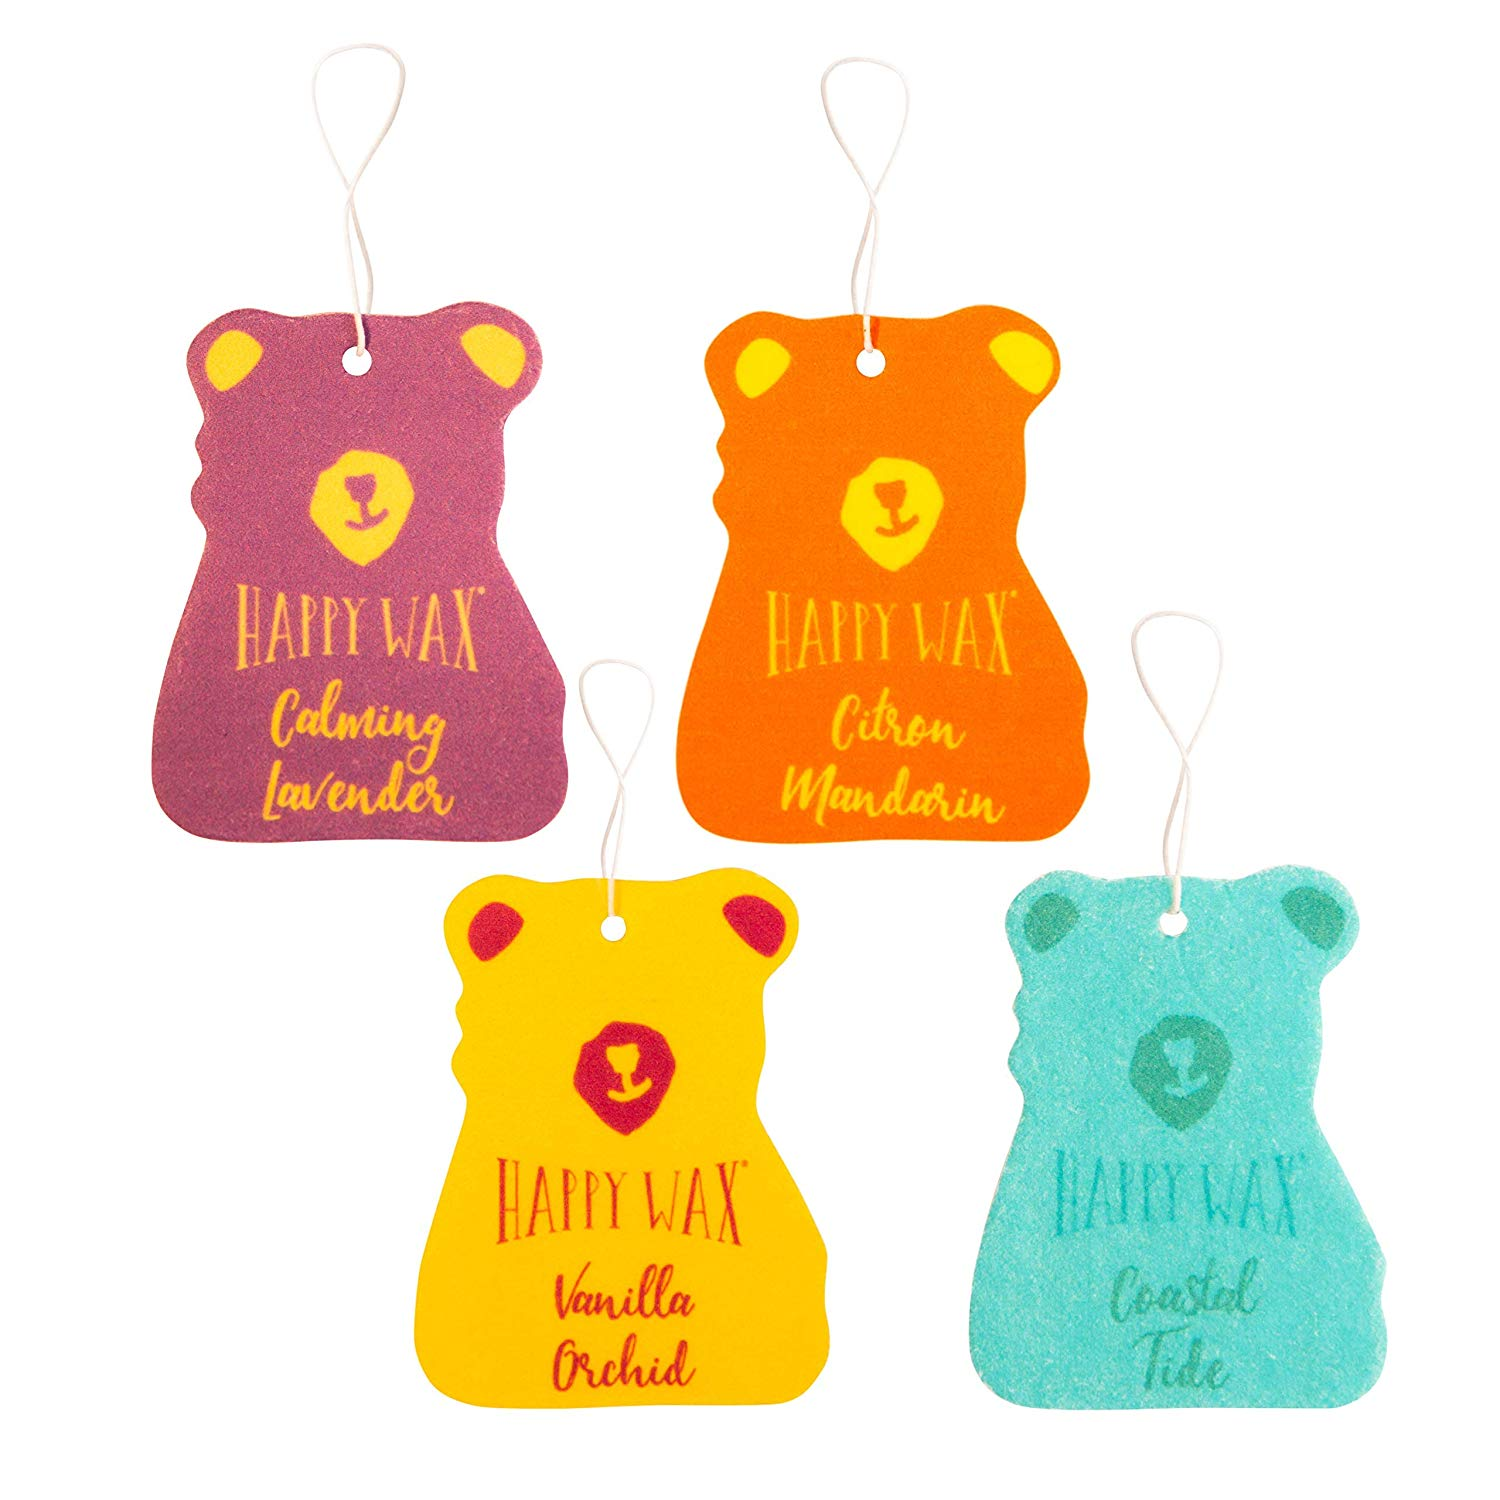 Happy Wax Scented Hanging Car Cub Air Freshener | Best Car Scents